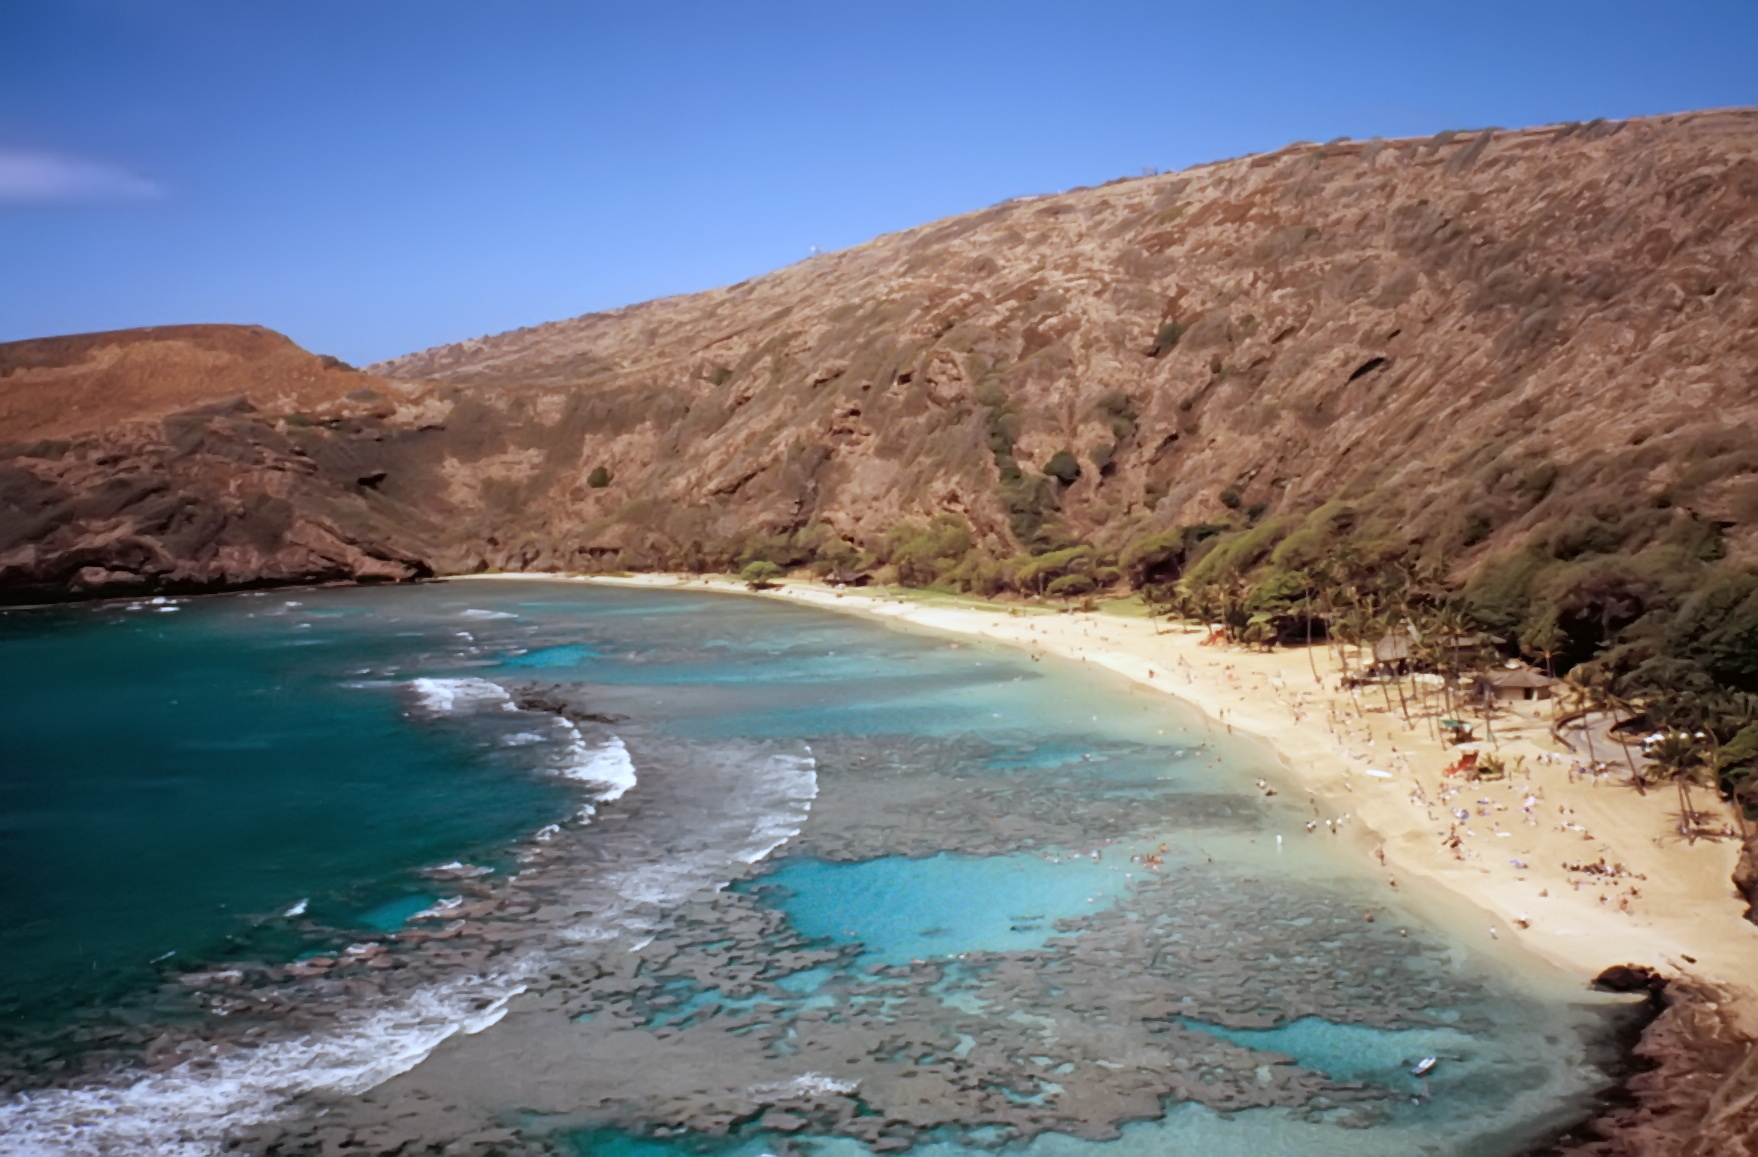 Hanauma Bay on the island of Oahu